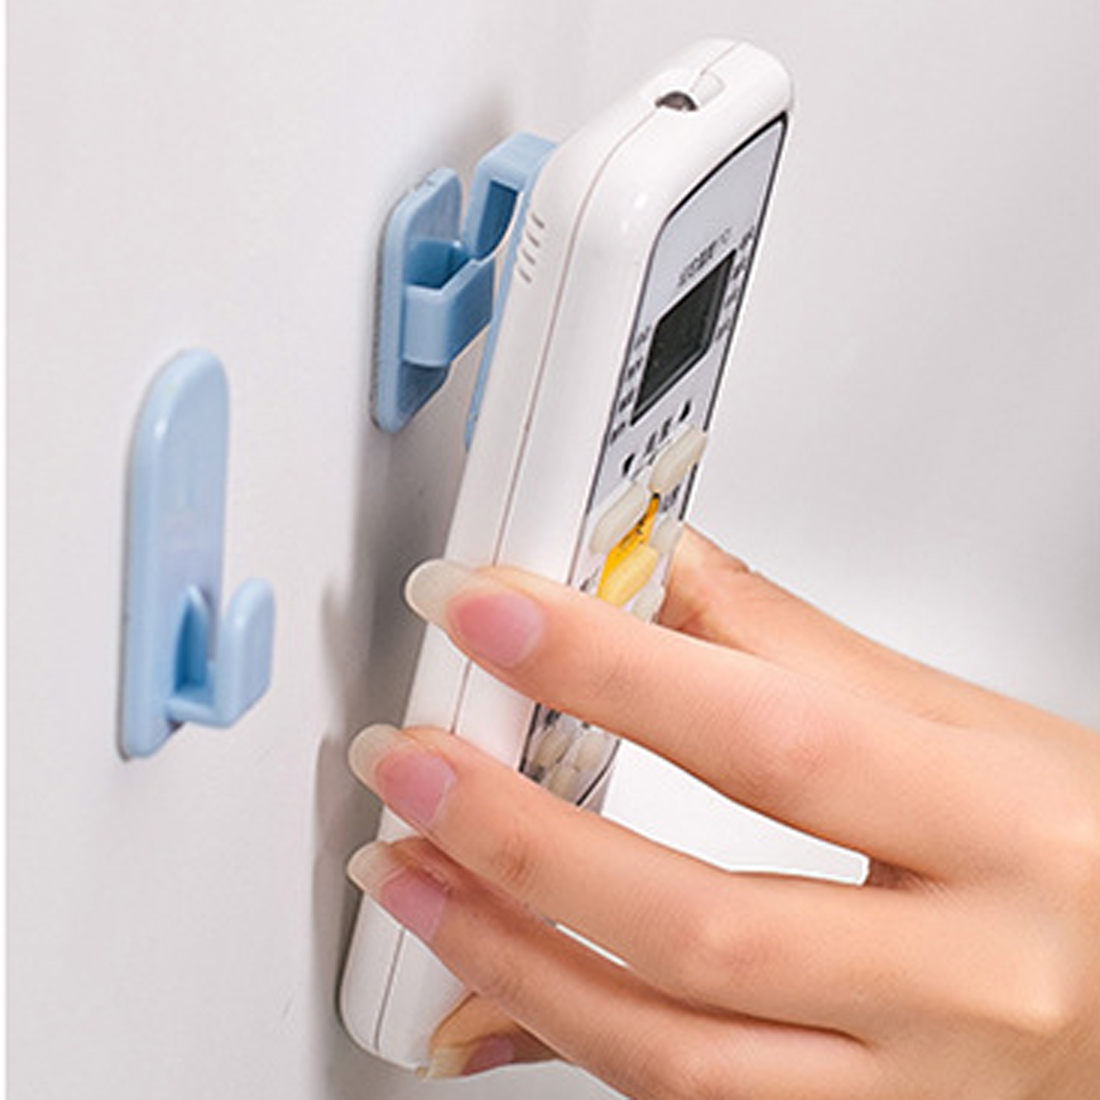 2Set(4Pcs) Self Adhesive Plastic Hooks Holder Remote Control Sticky Hook Hanger TV Air Conditioner Key Wall Storage